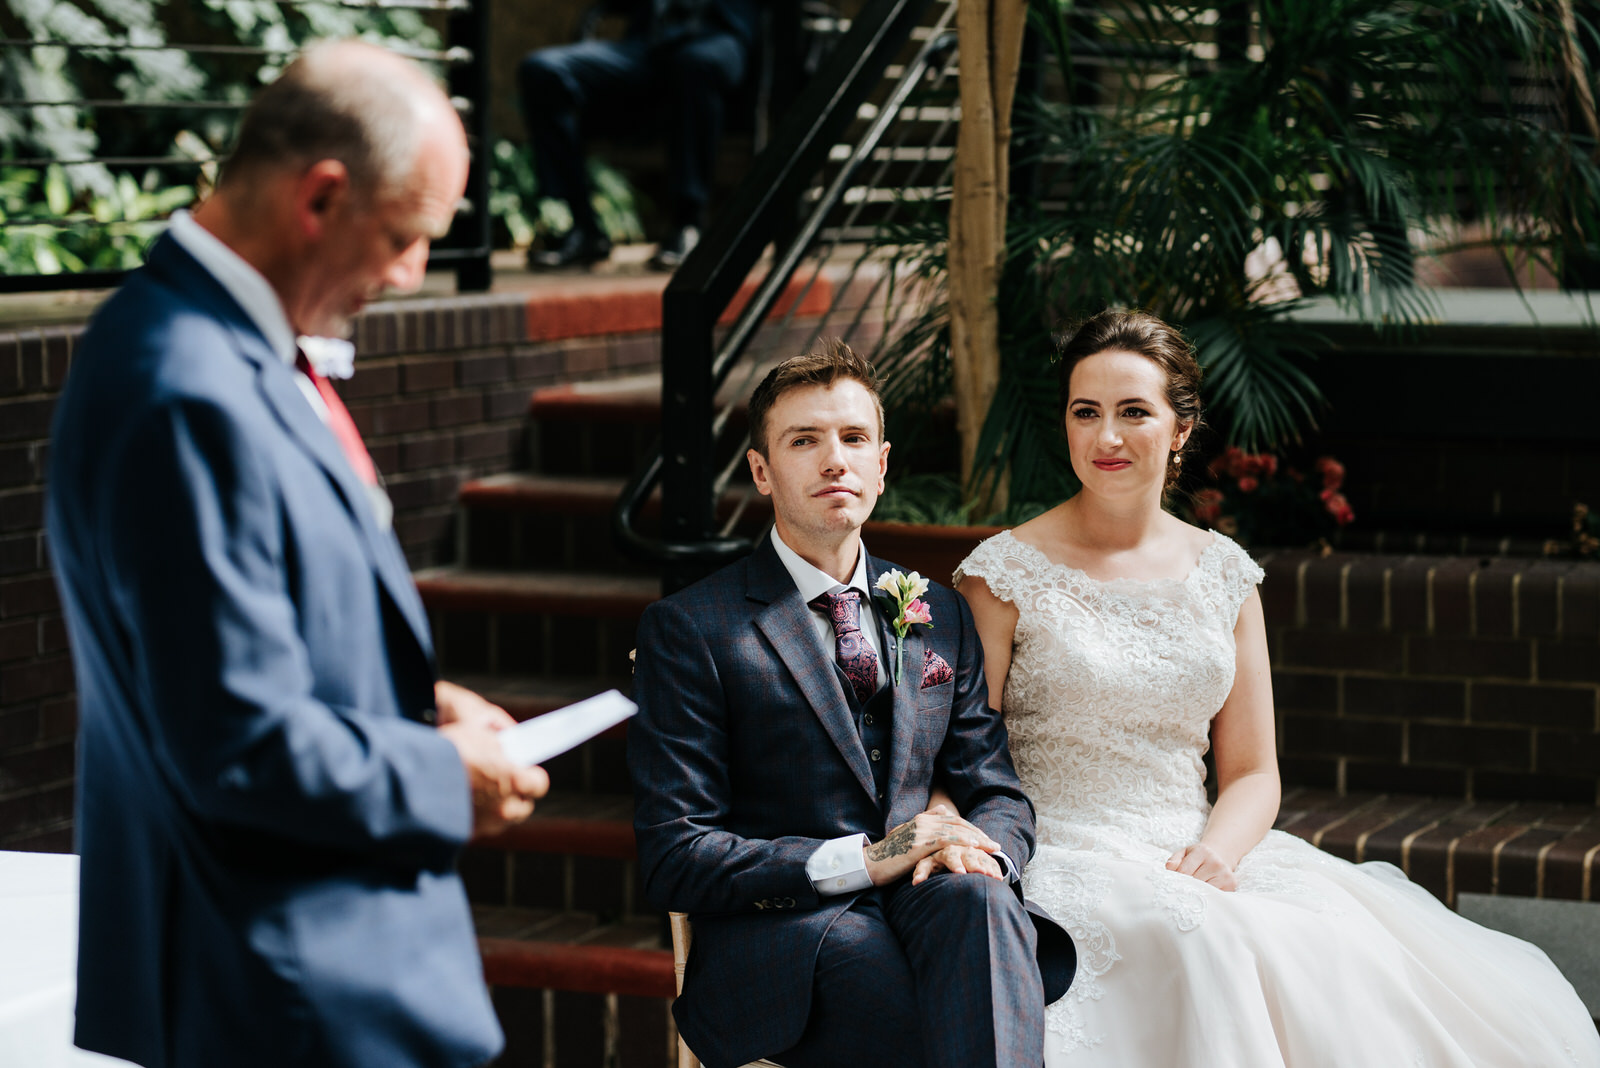 Bride and groom look at father of the groom as he makes emotiona